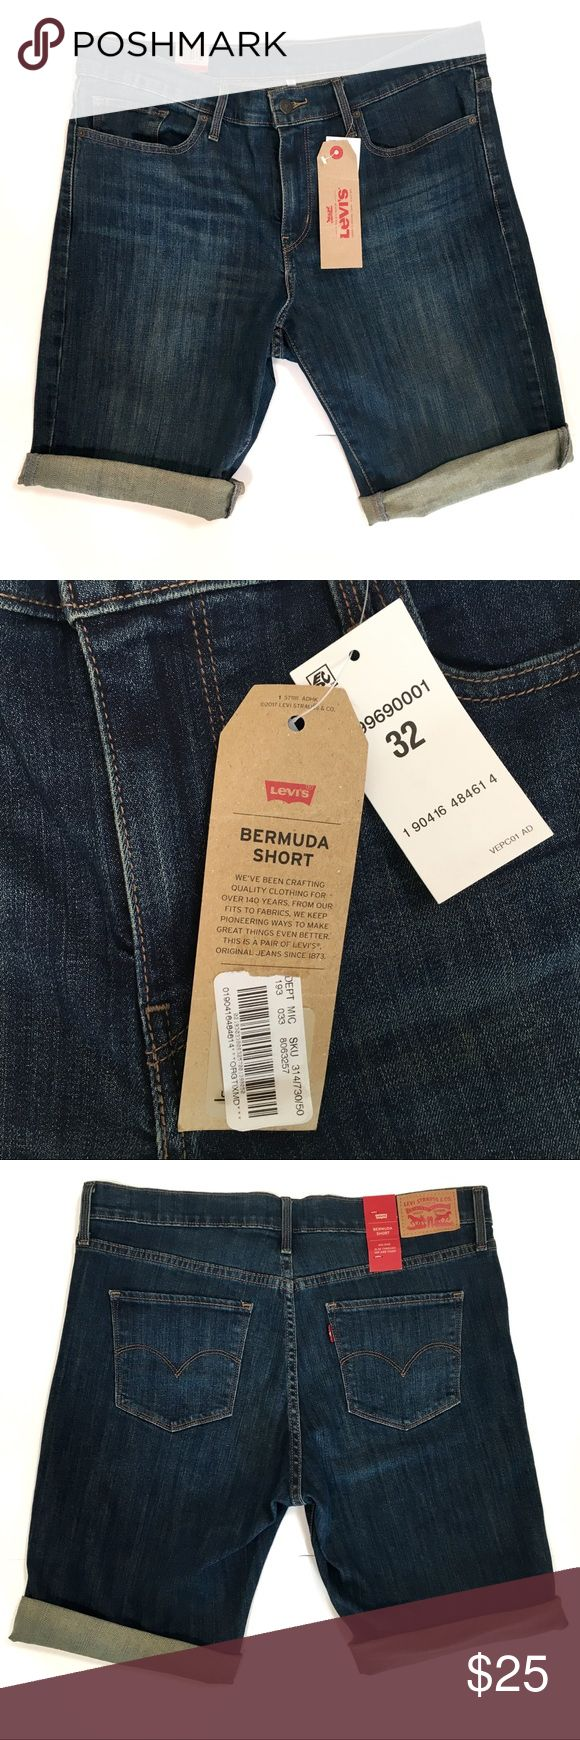 """NWT Levi's Bermuda Jean Shorts Mid Rise 32/14 Brand new with tags! Levi's Bermuda Jean Shorts are Slim through hip and thigh with a longer cuffed leg. 99% Cotton and 1% Elastine for comfortable stretch that holds. Women's size 32 or 14. Waist 18"""" flat unstretched. Rise 10"""". Inseam 10"""" Levi's Shorts Bermudas"""